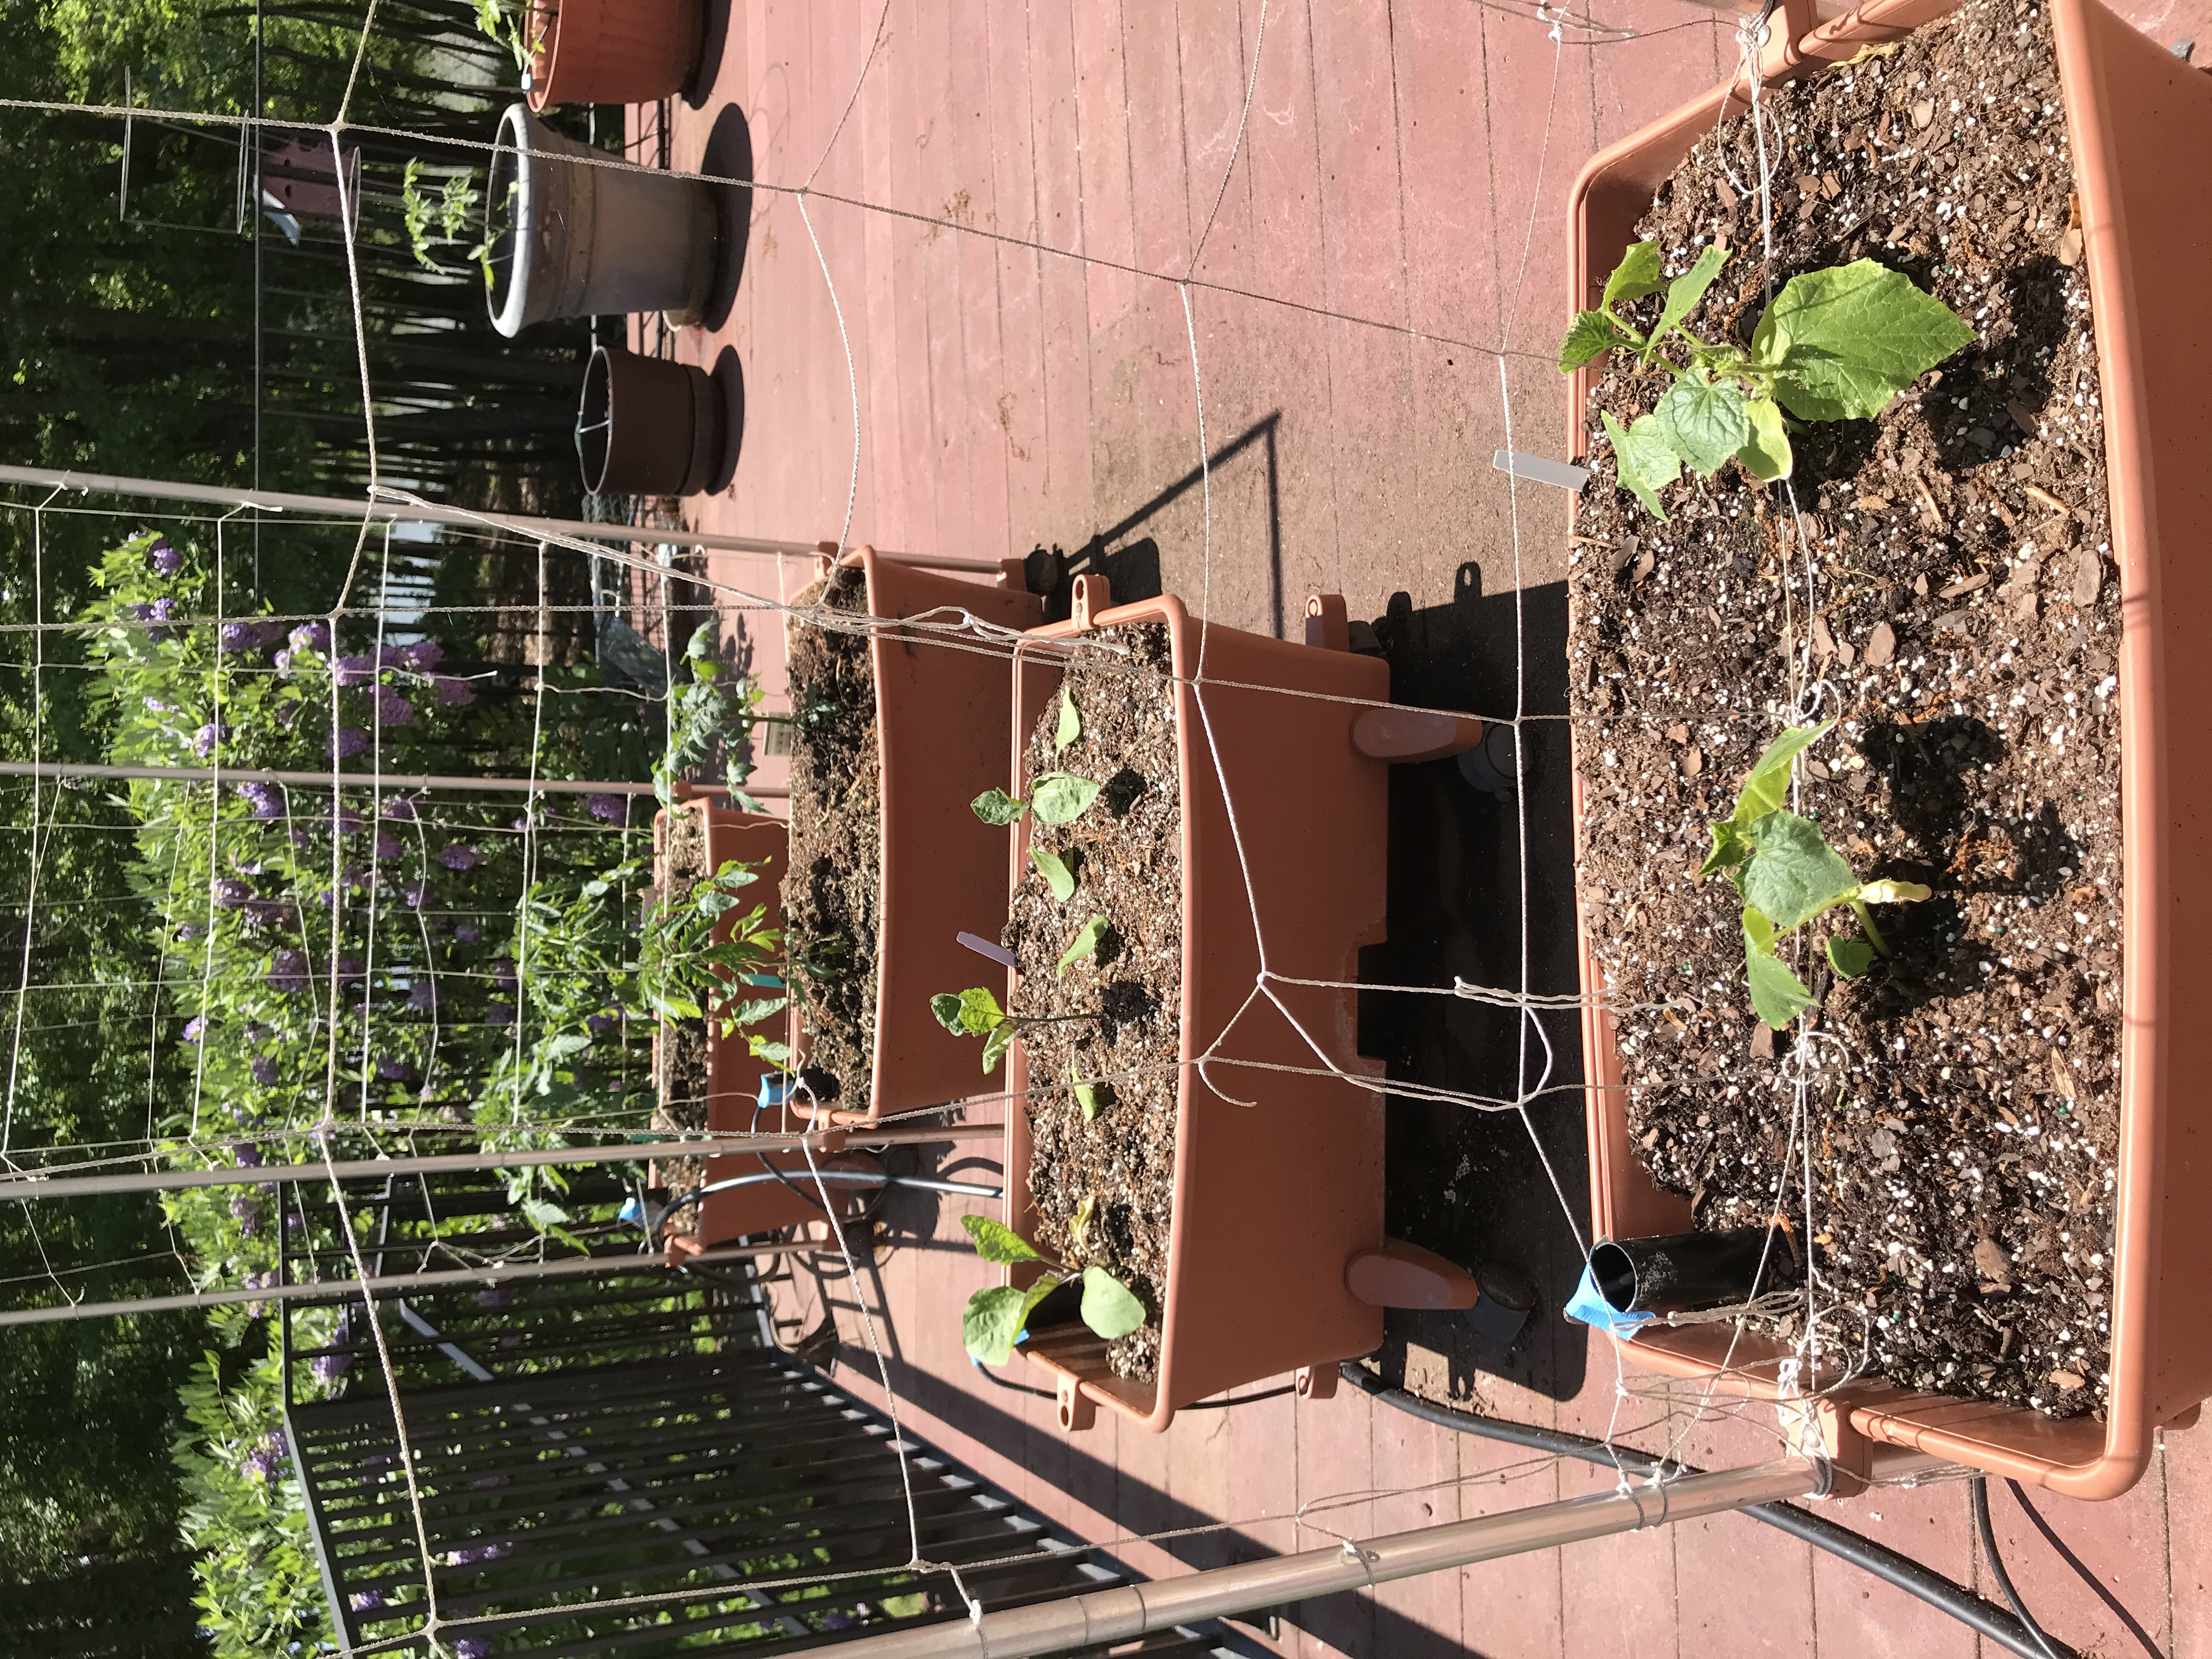 tomatoes and cucumbers growing in containers